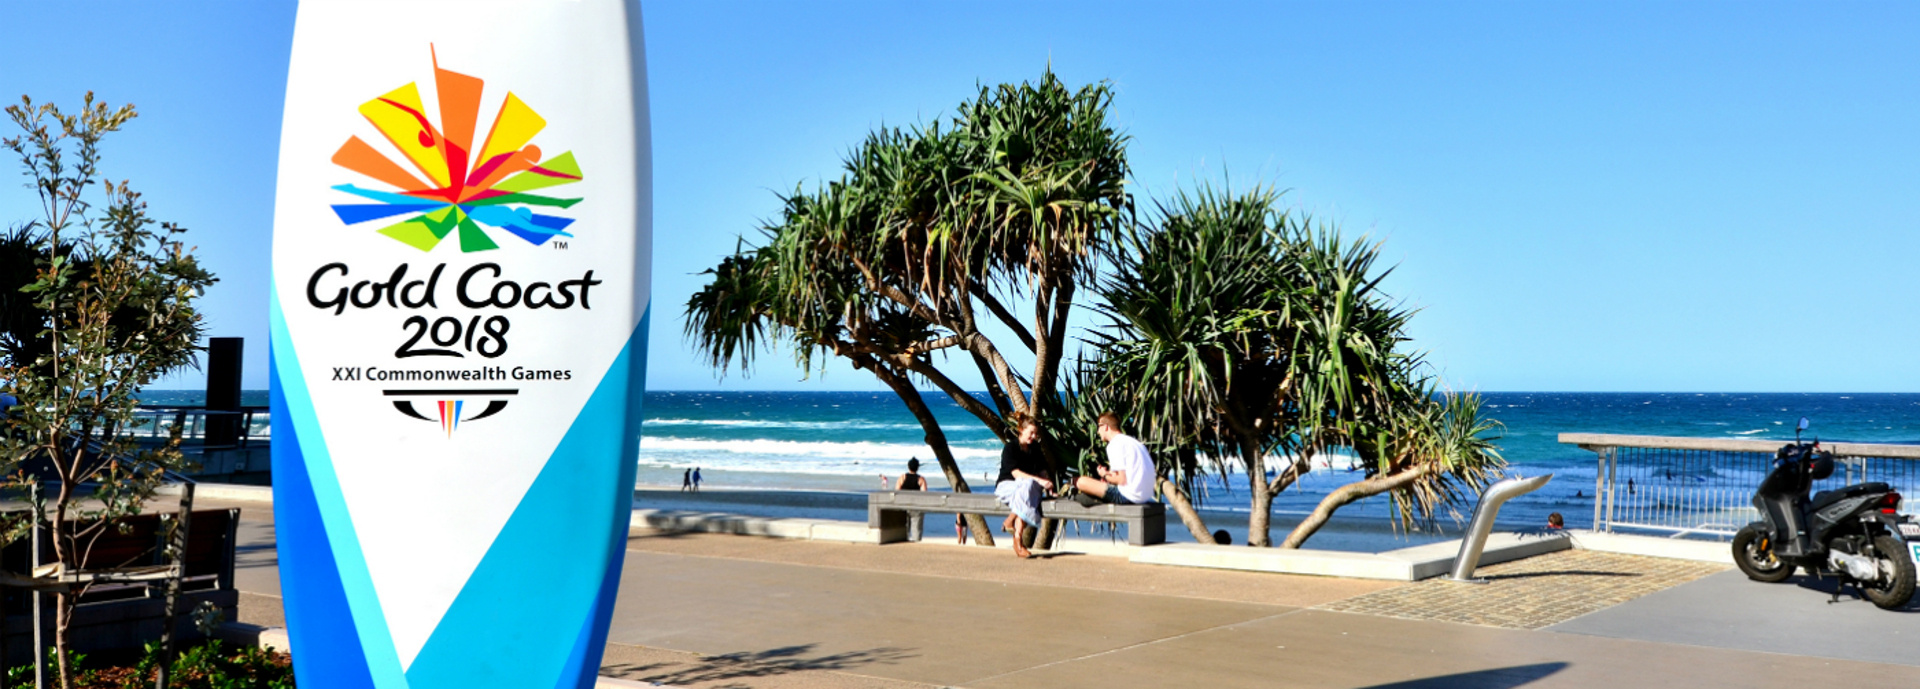 Gold Coast surf board image